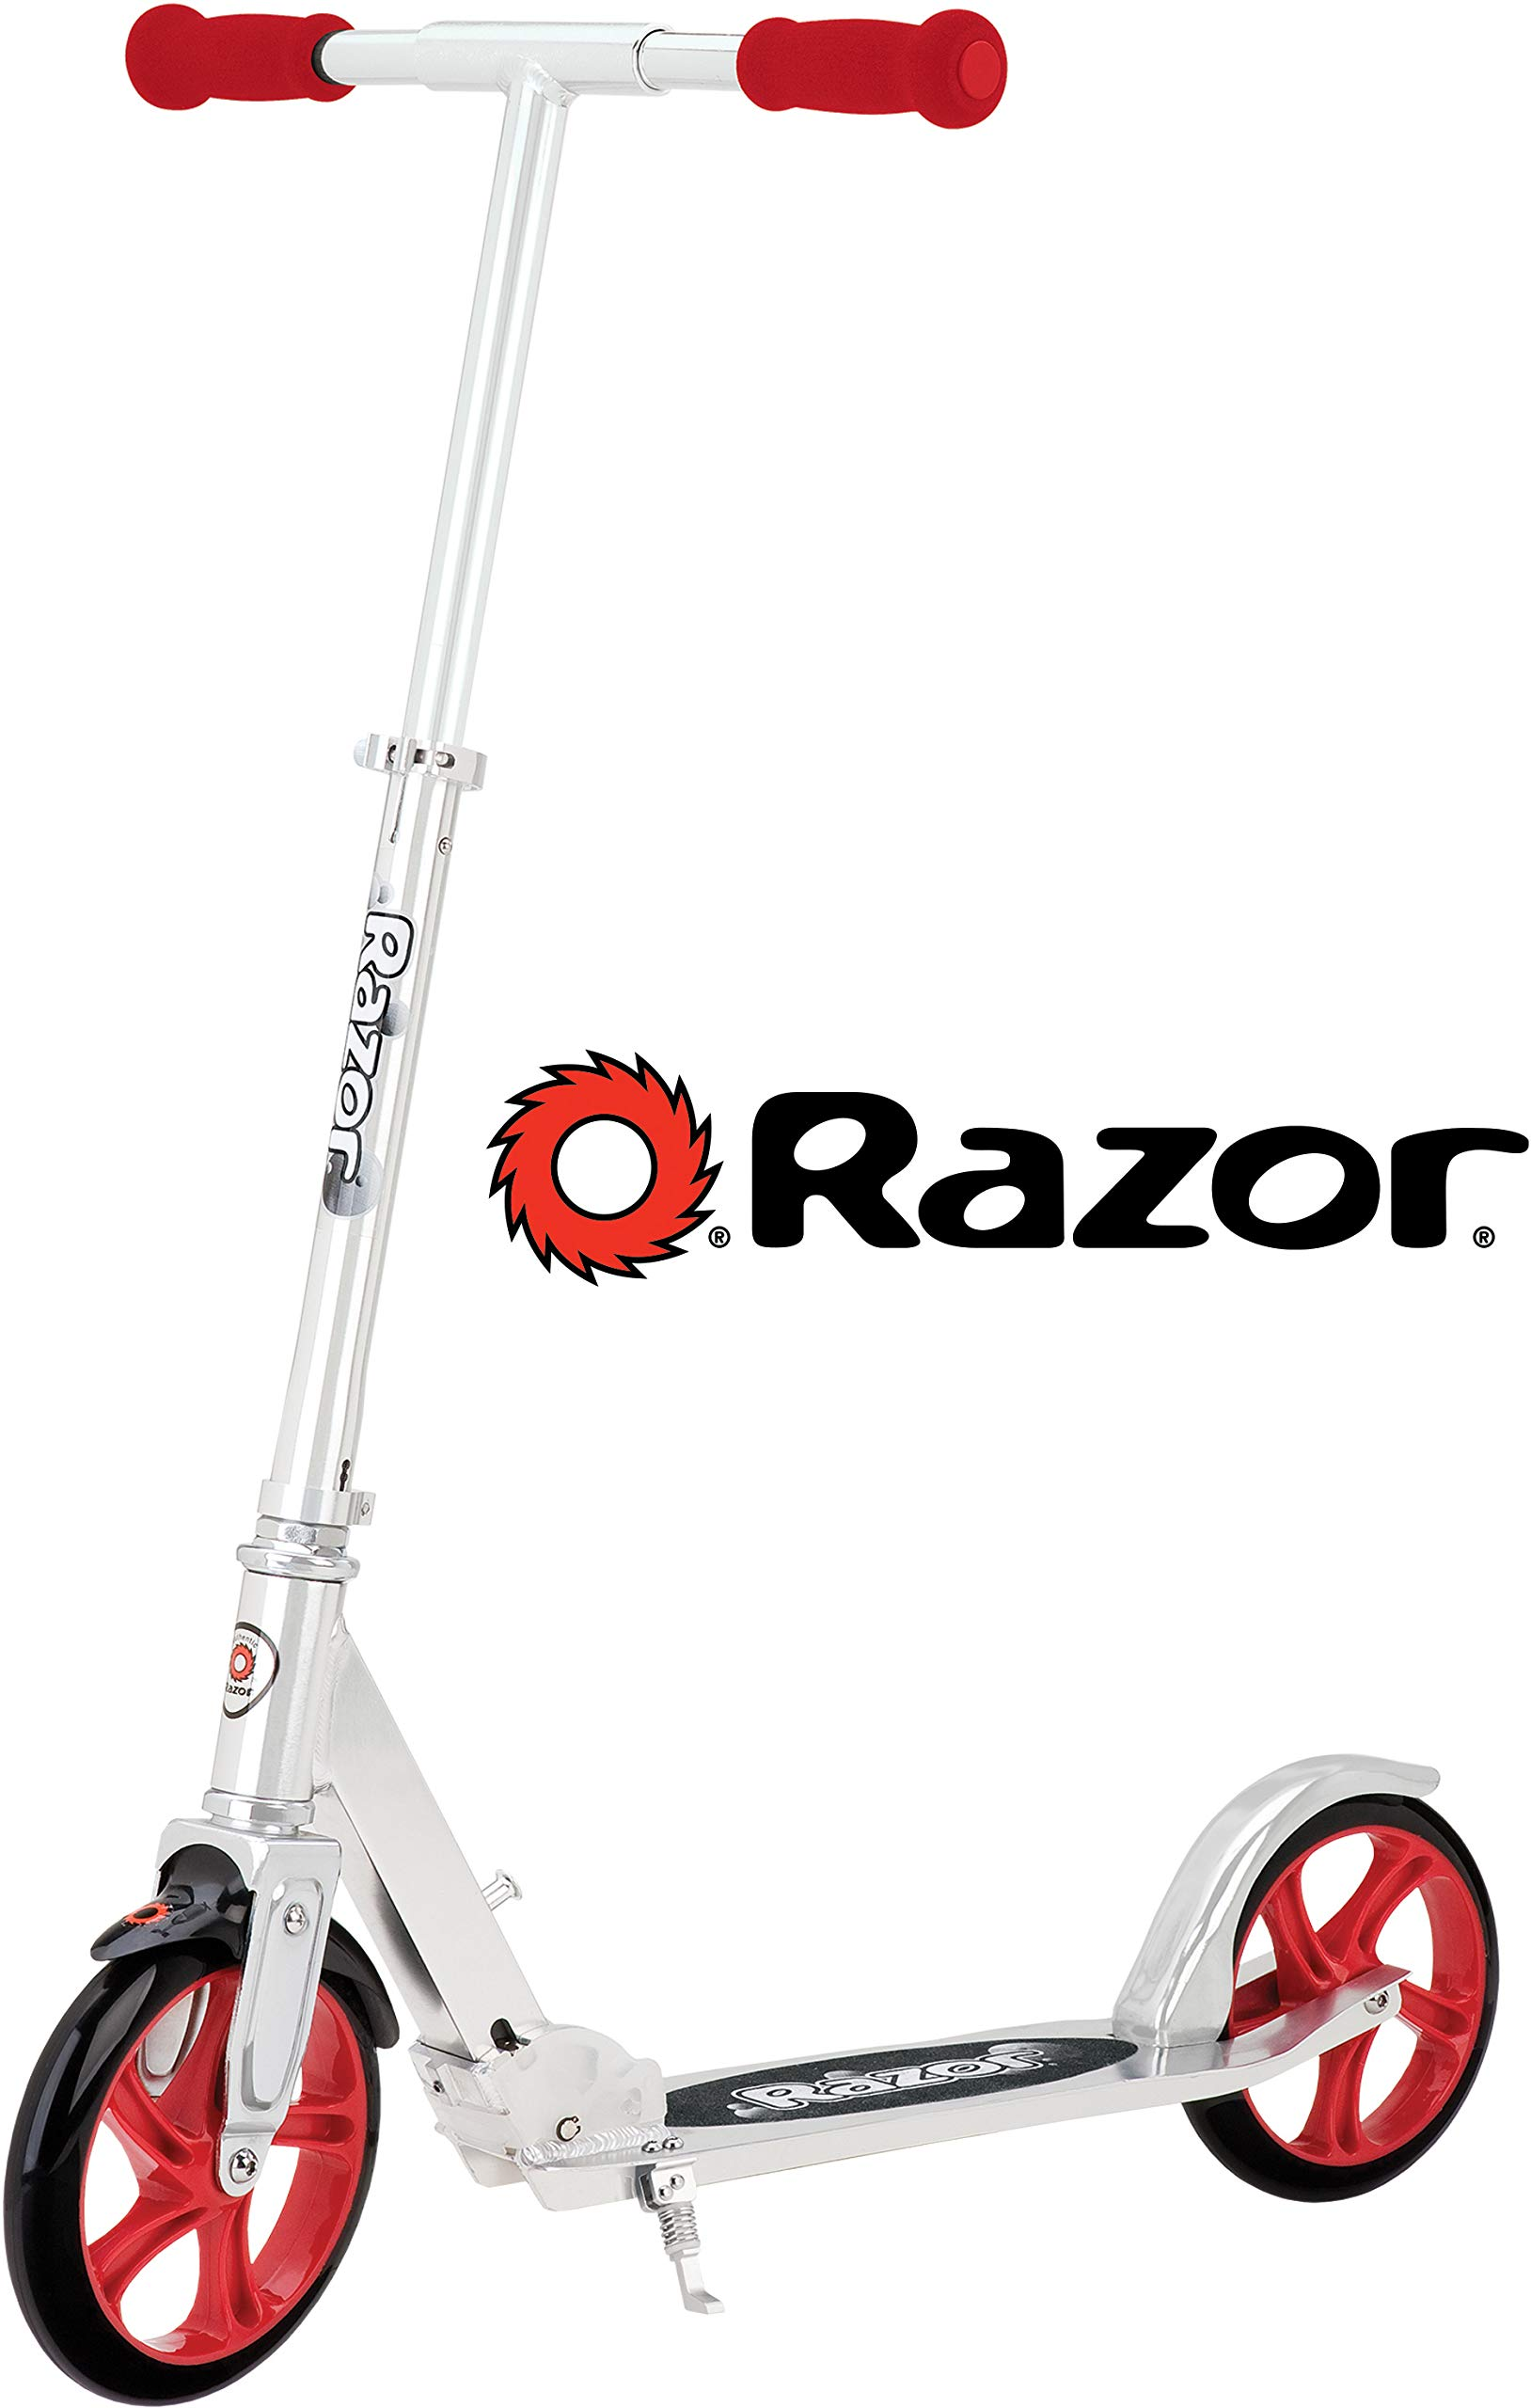 "Razor A5 Lux Kick Scooter - Large 8"" Wheels, Foldable, Adjustable Handlebars, Lightweight, for Riders up to 220 lbs"